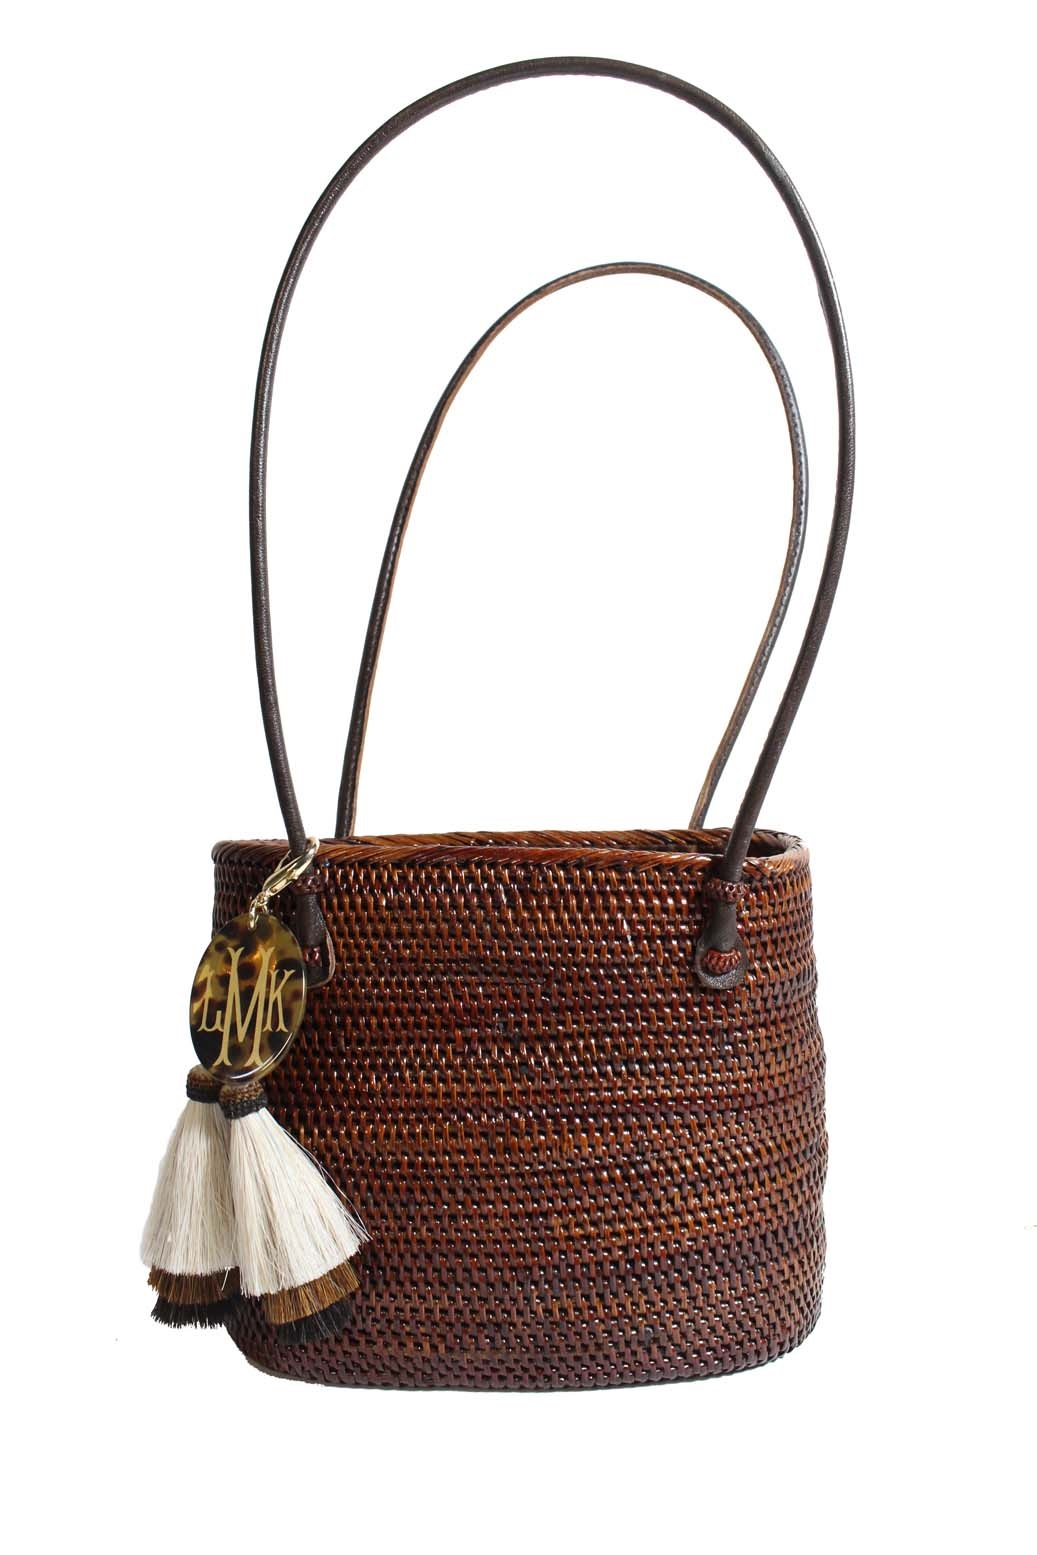 Buy low price, high quality tassel bag with worldwide shipping on dolcehouse.ml